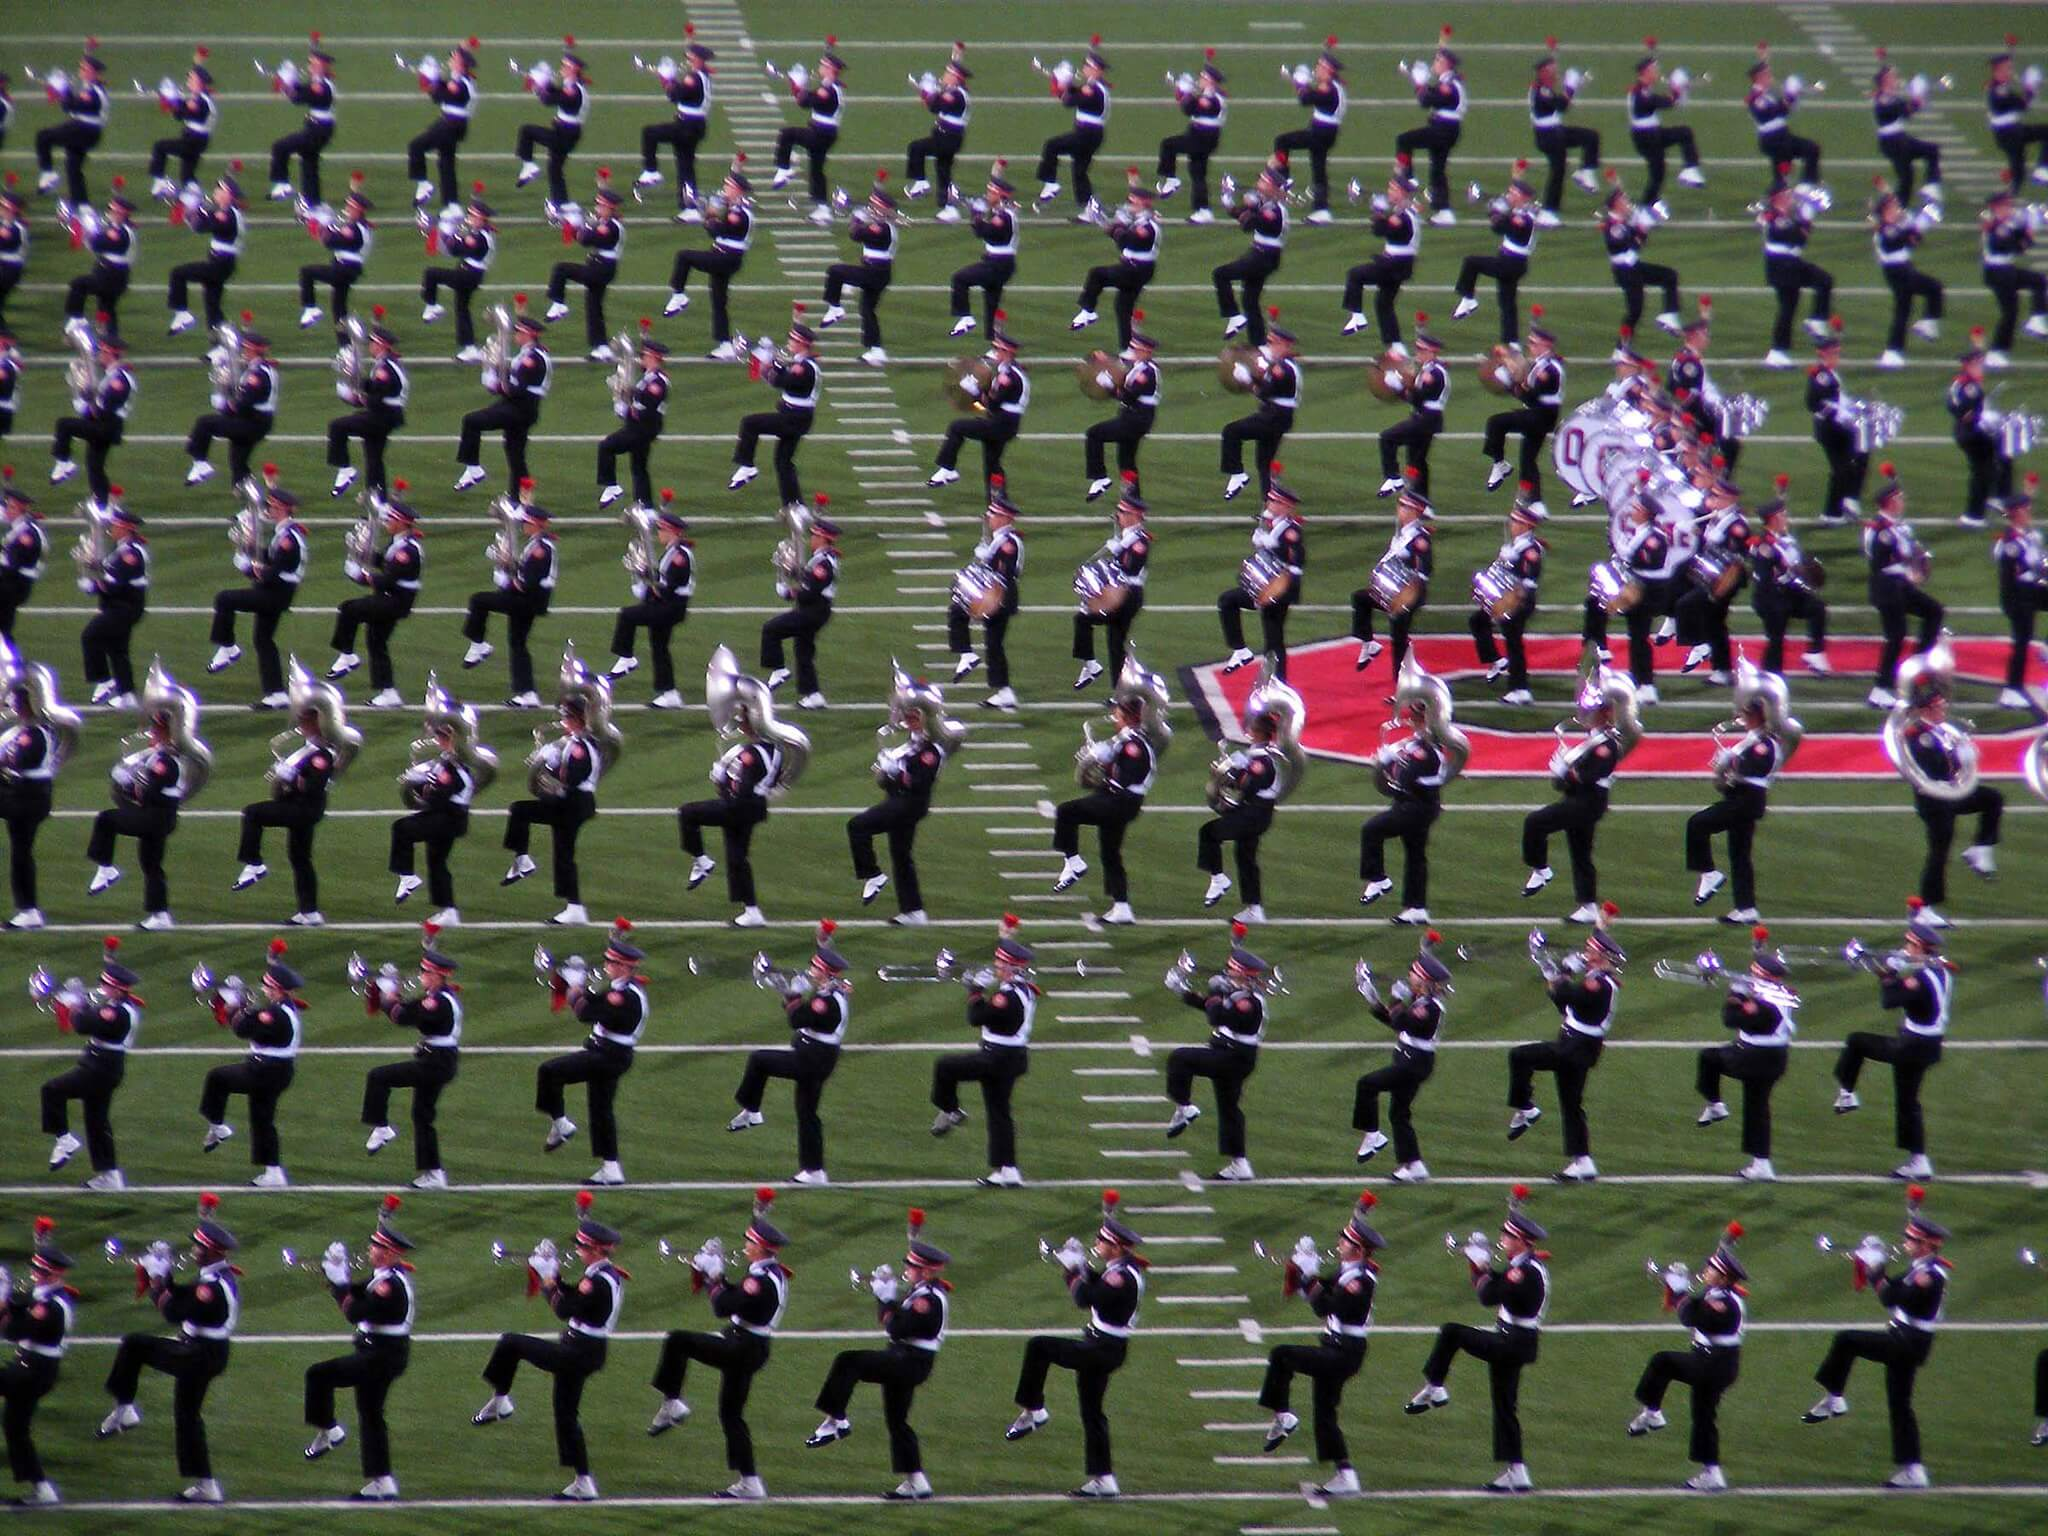 Ohio State University Marching Band Pride of the Buckeyes